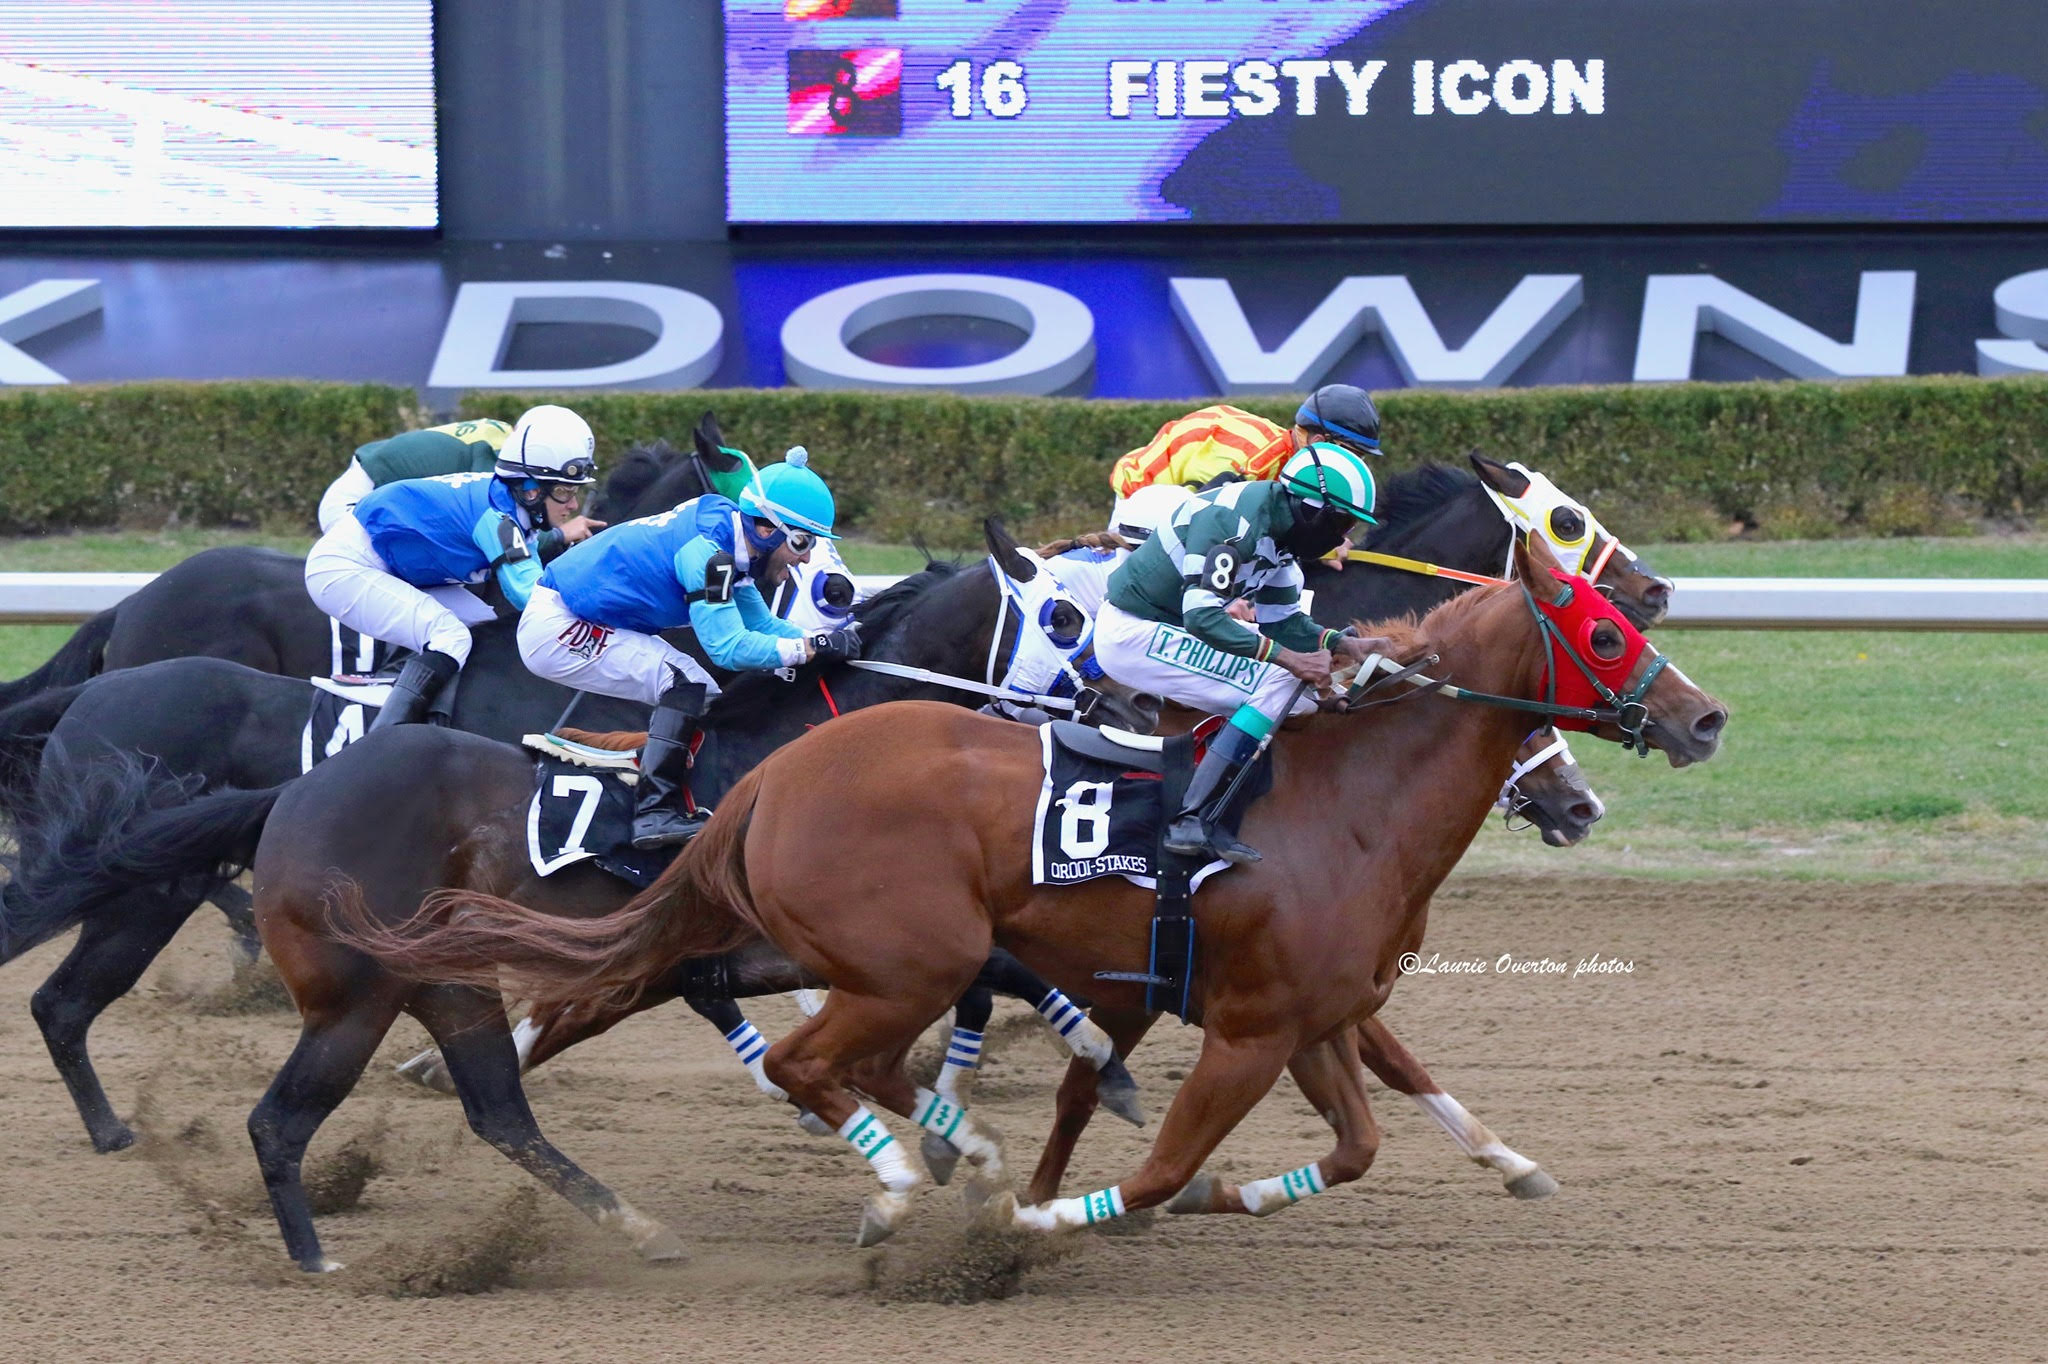 Fiesty Icon Upsets Country Boy 123 in $54,650 Alex Picov Memorial Championship